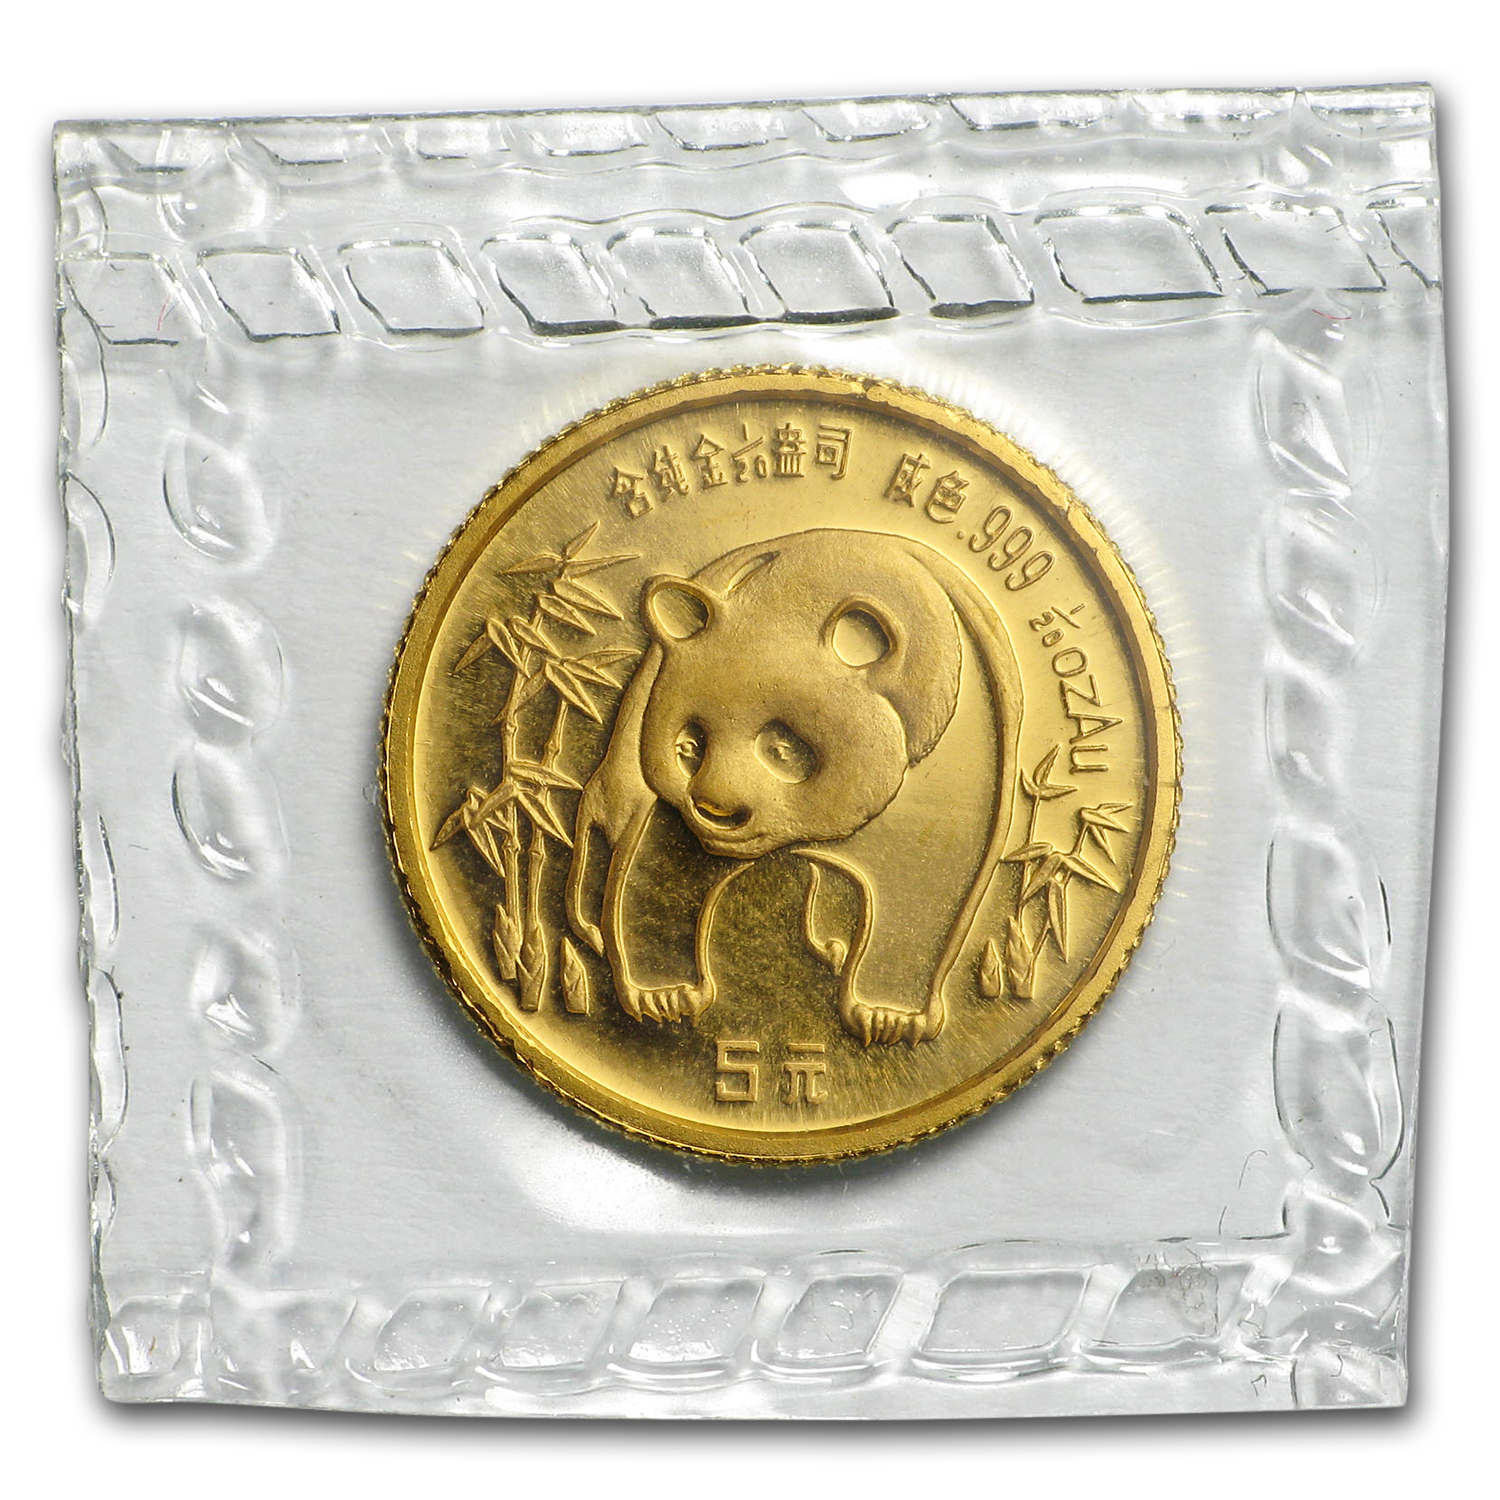 1986 (1/20 oz) Gold Chinese Pandas - (Sealed)